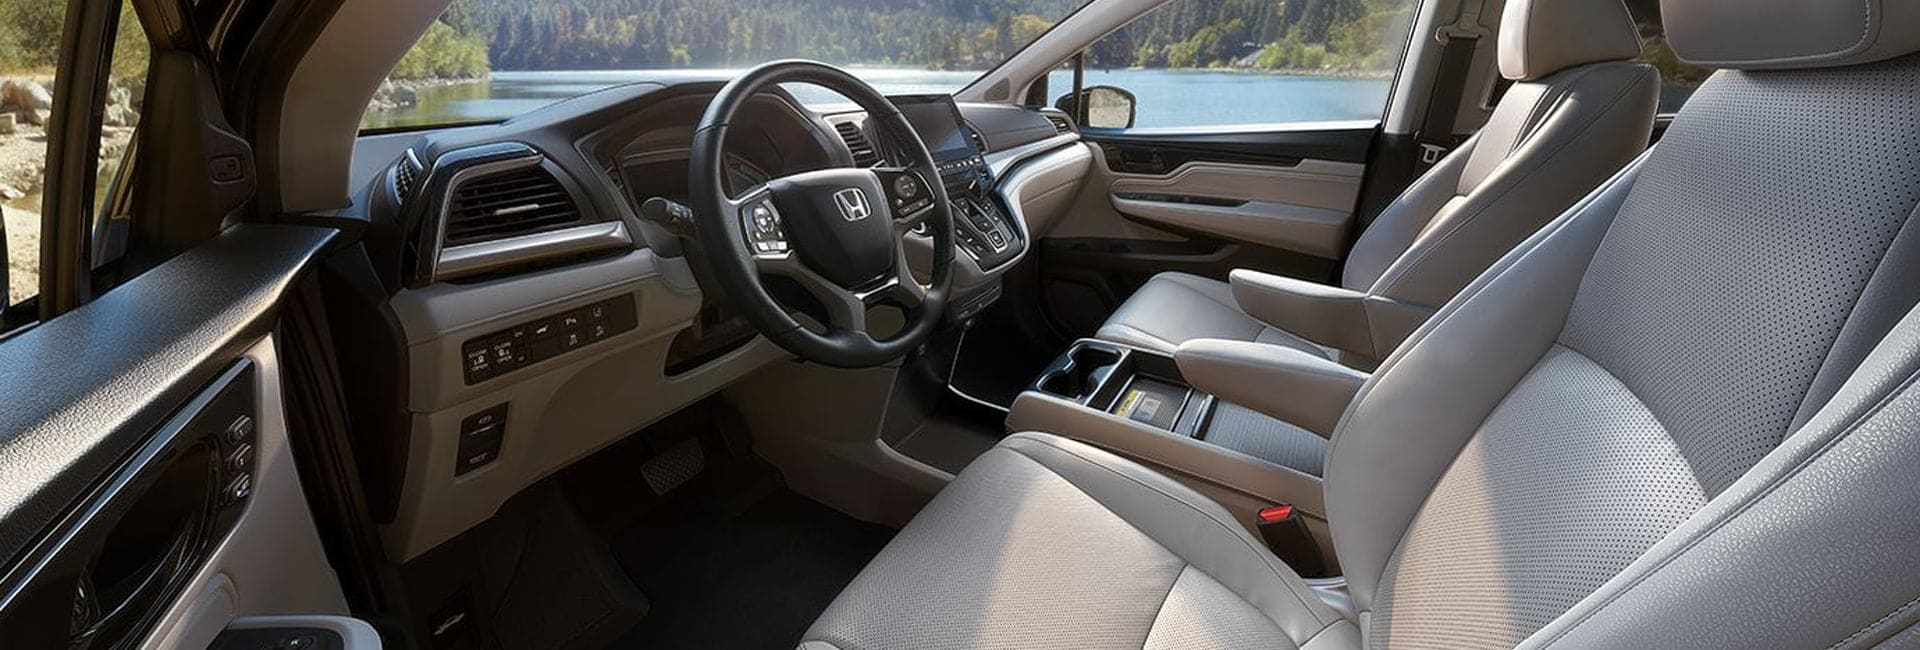 Honda Odyssey Interior Vehicle Features